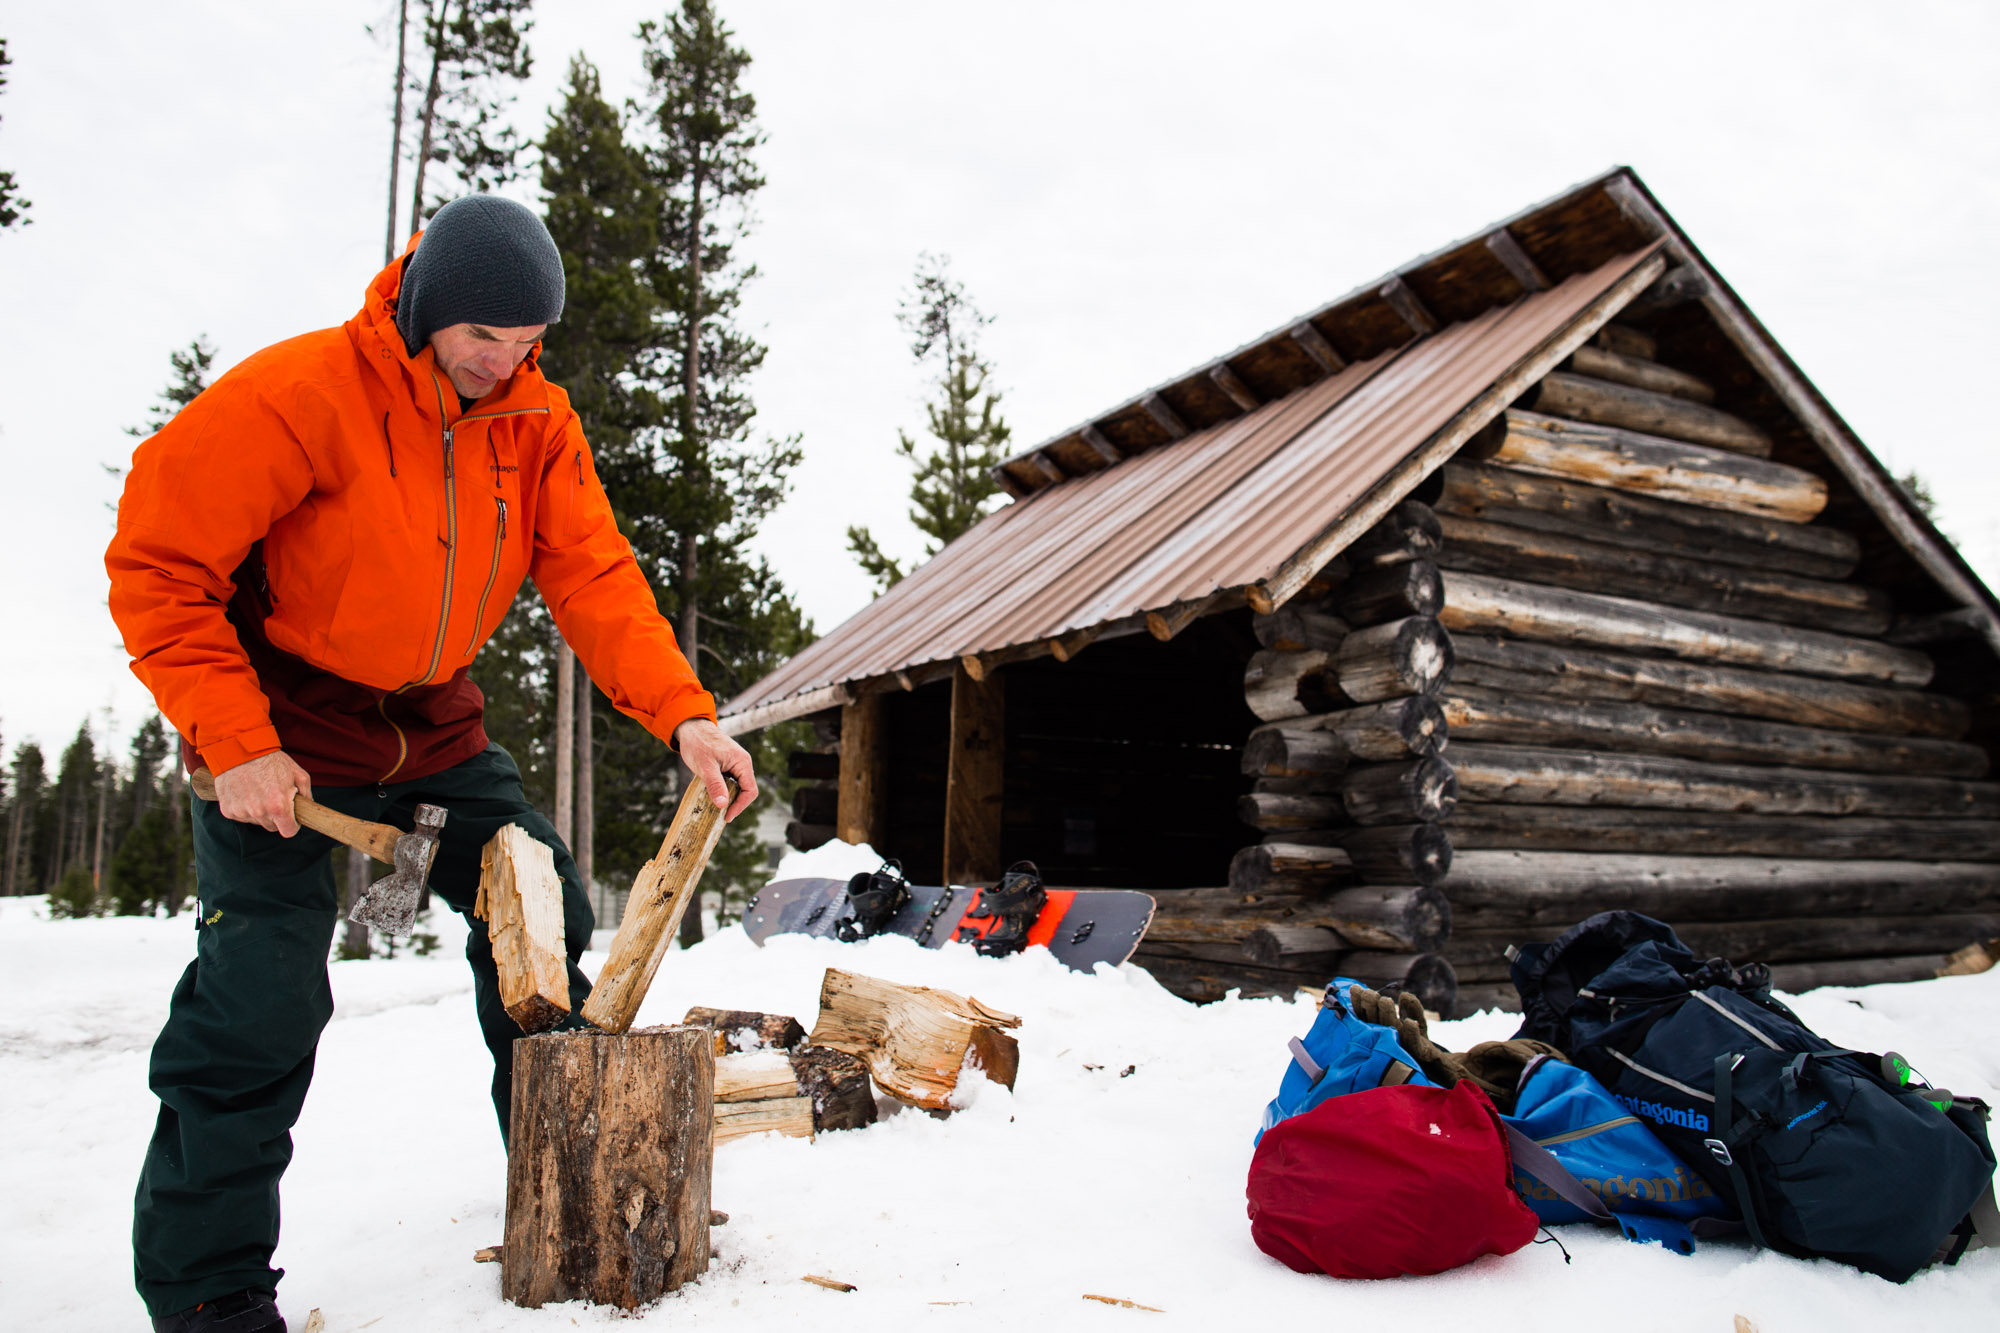 Winter Cabin Life | West Coast Outdoor Photography